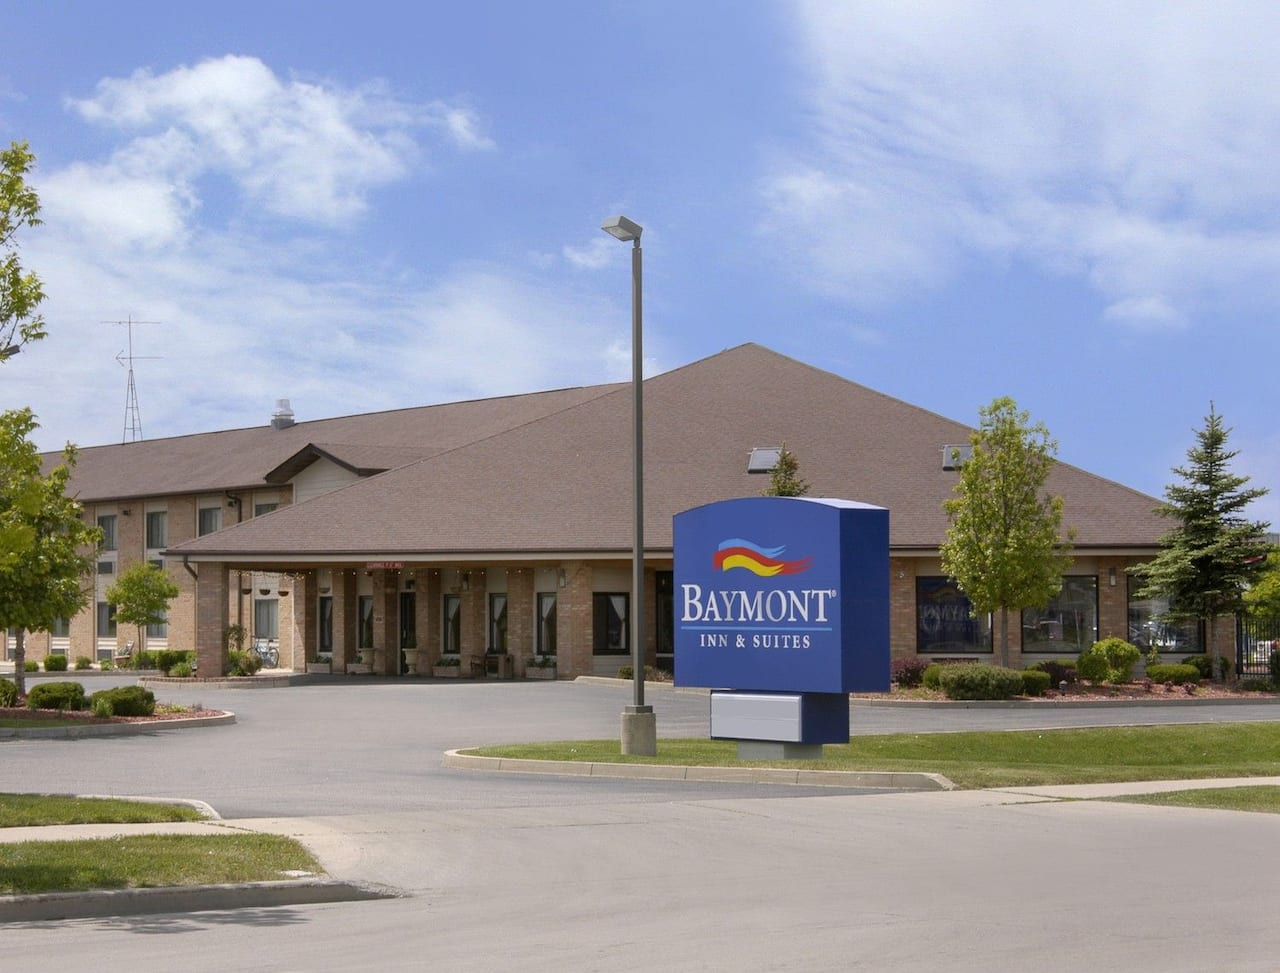 Baymont Inn & Suites Whitewater in Janesville, Wisconsin